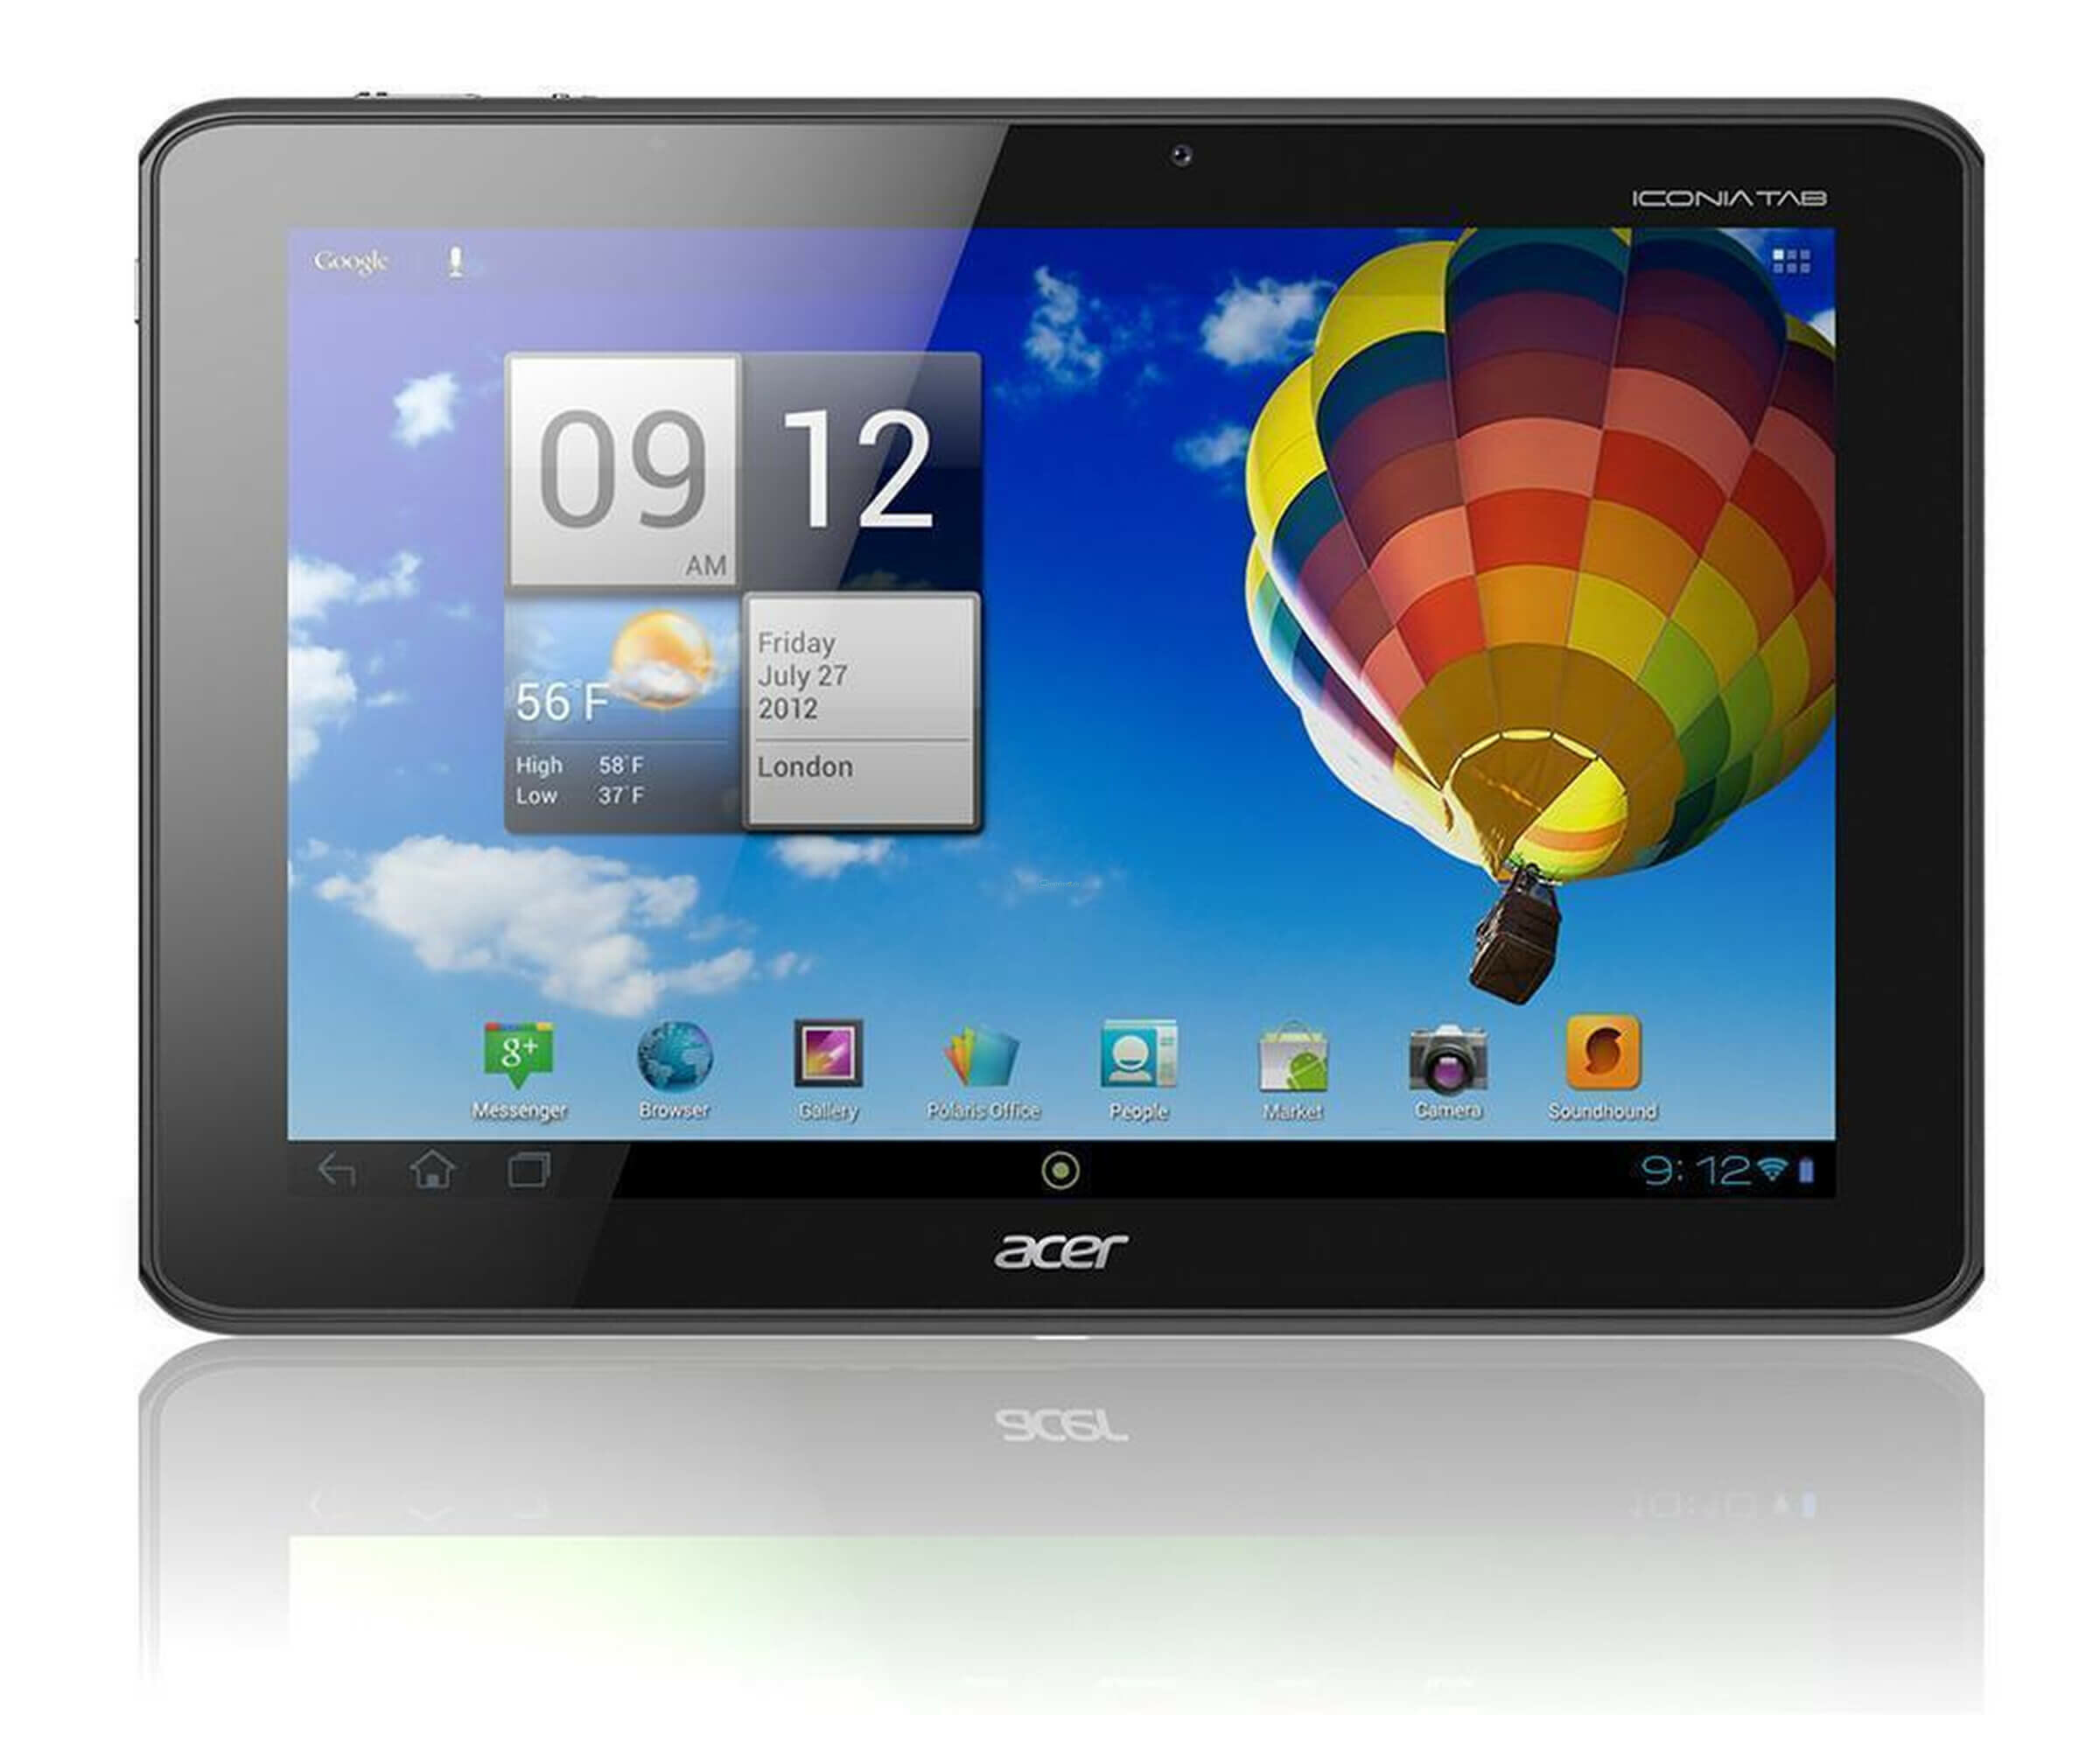 Acer ICONIA Tab A510 - Tablet - Android 4.1.2 - 32 GB - 25.7 cm (10.1)